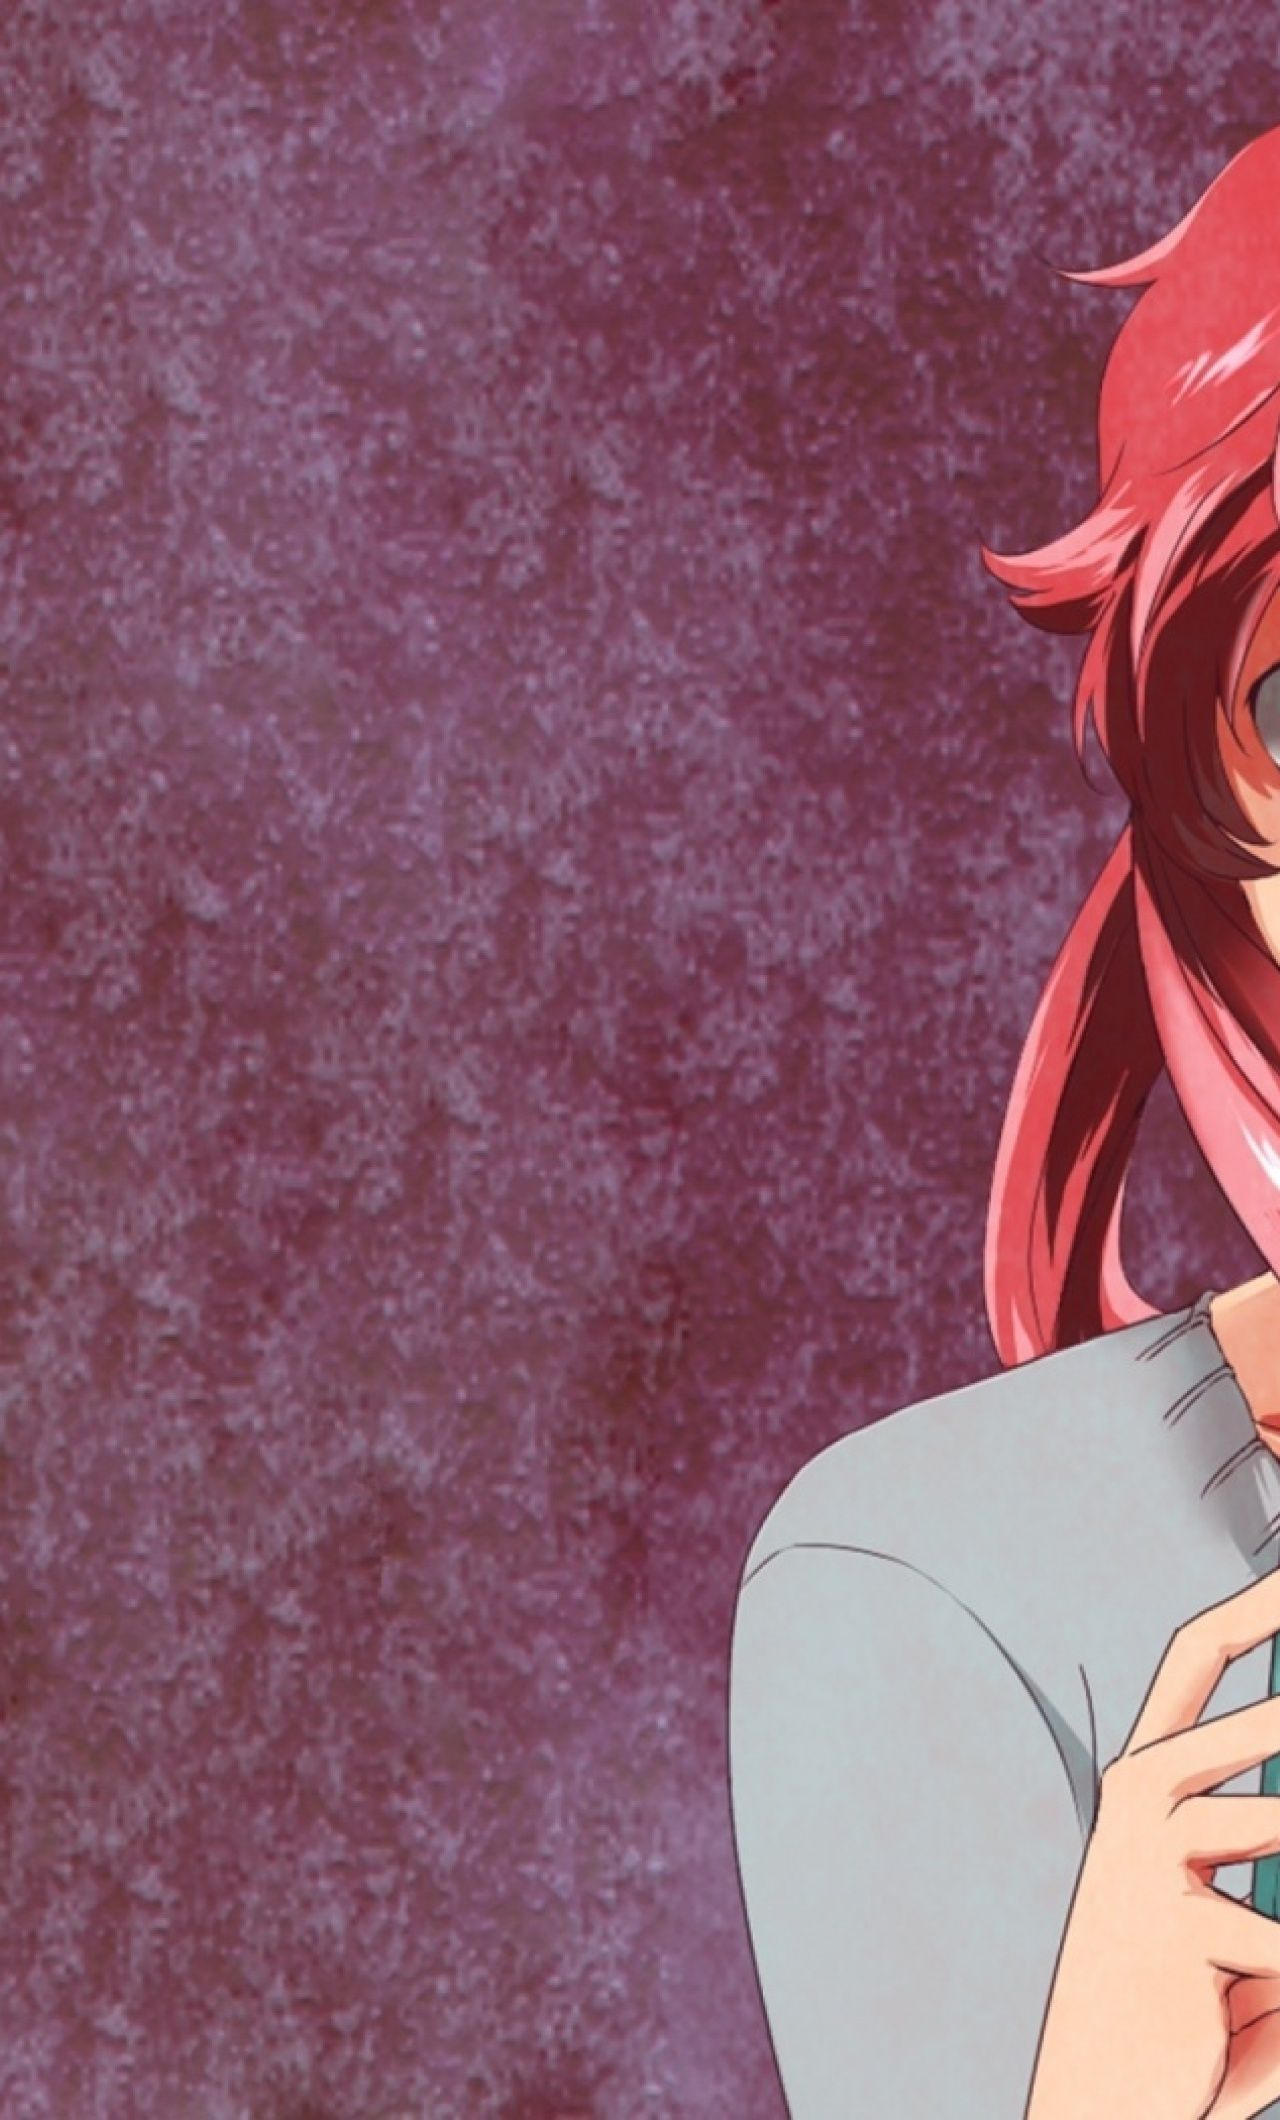 Future Diary Wallpapers Posted By Sarah Tremblay